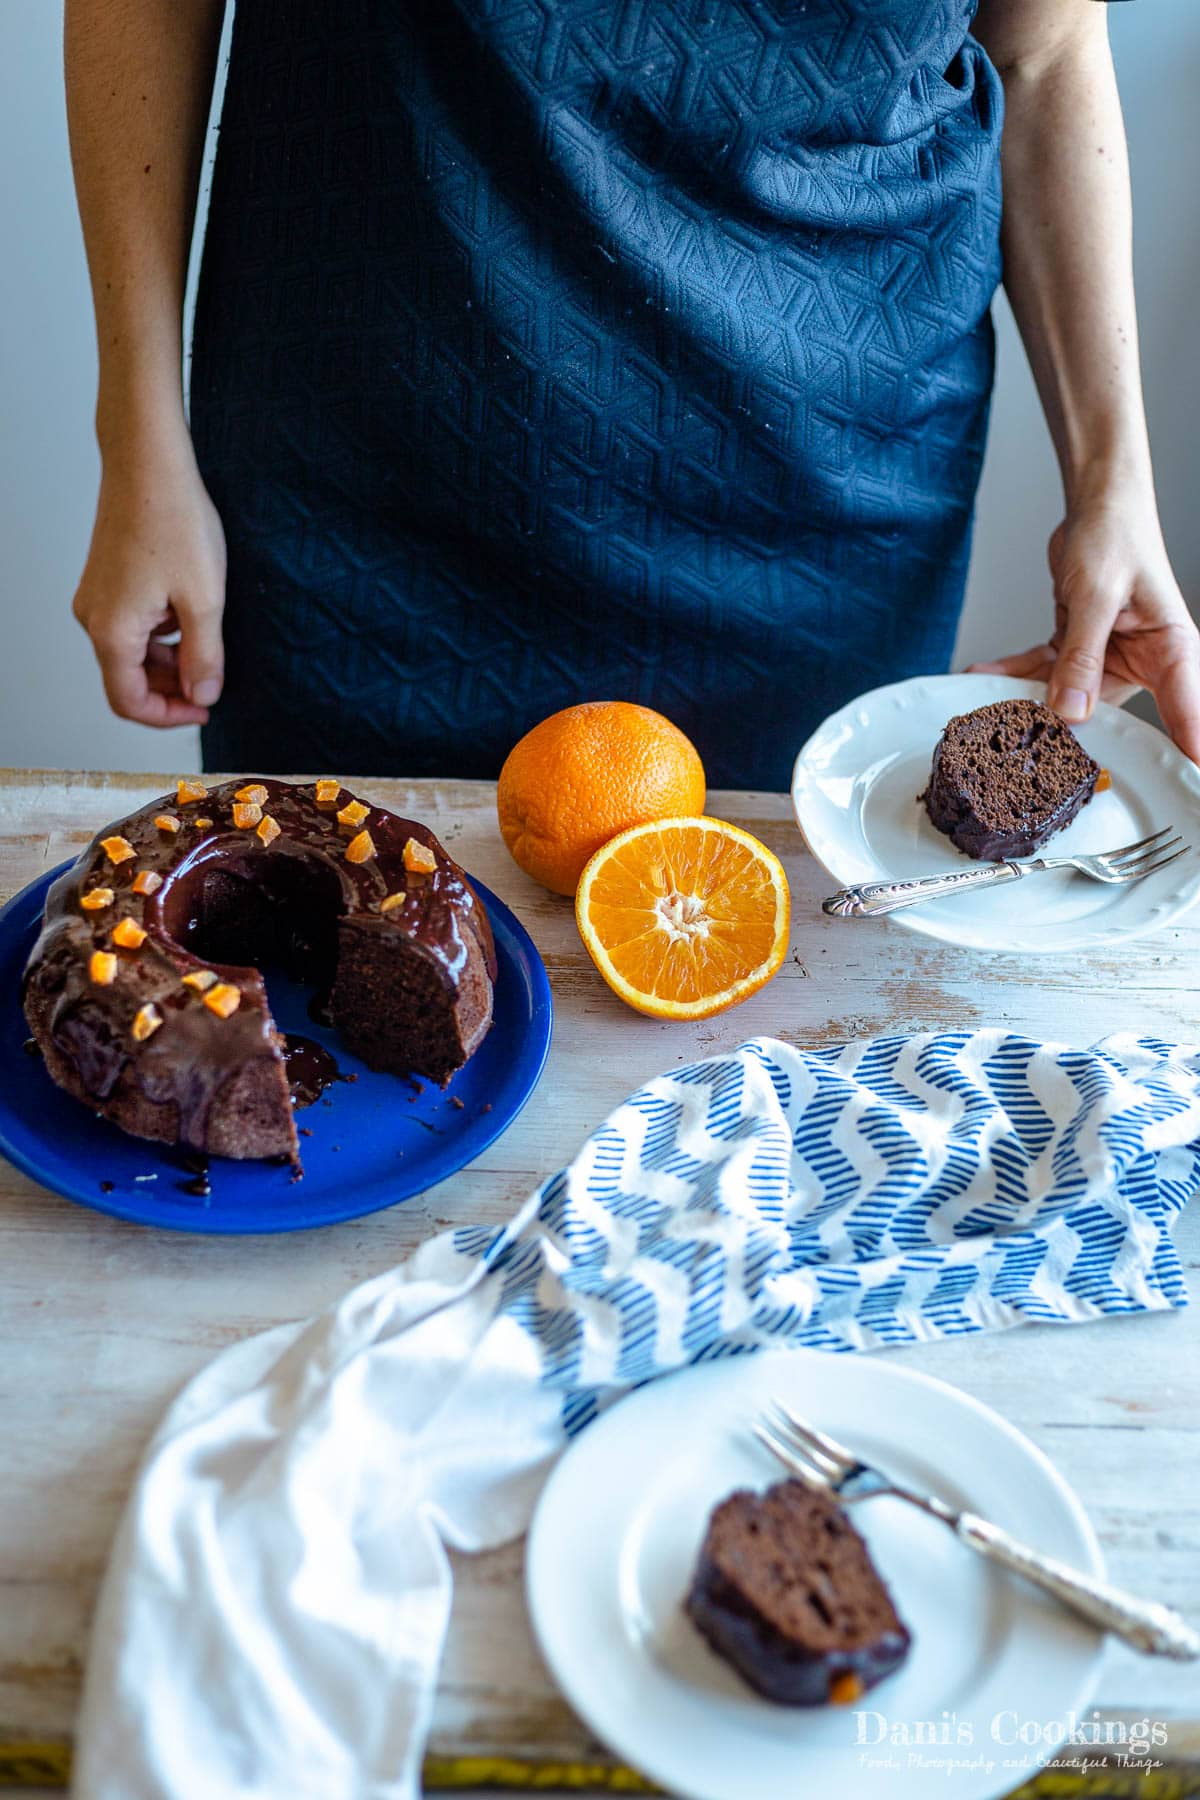 a woman with a slice of bundt cake on a plate